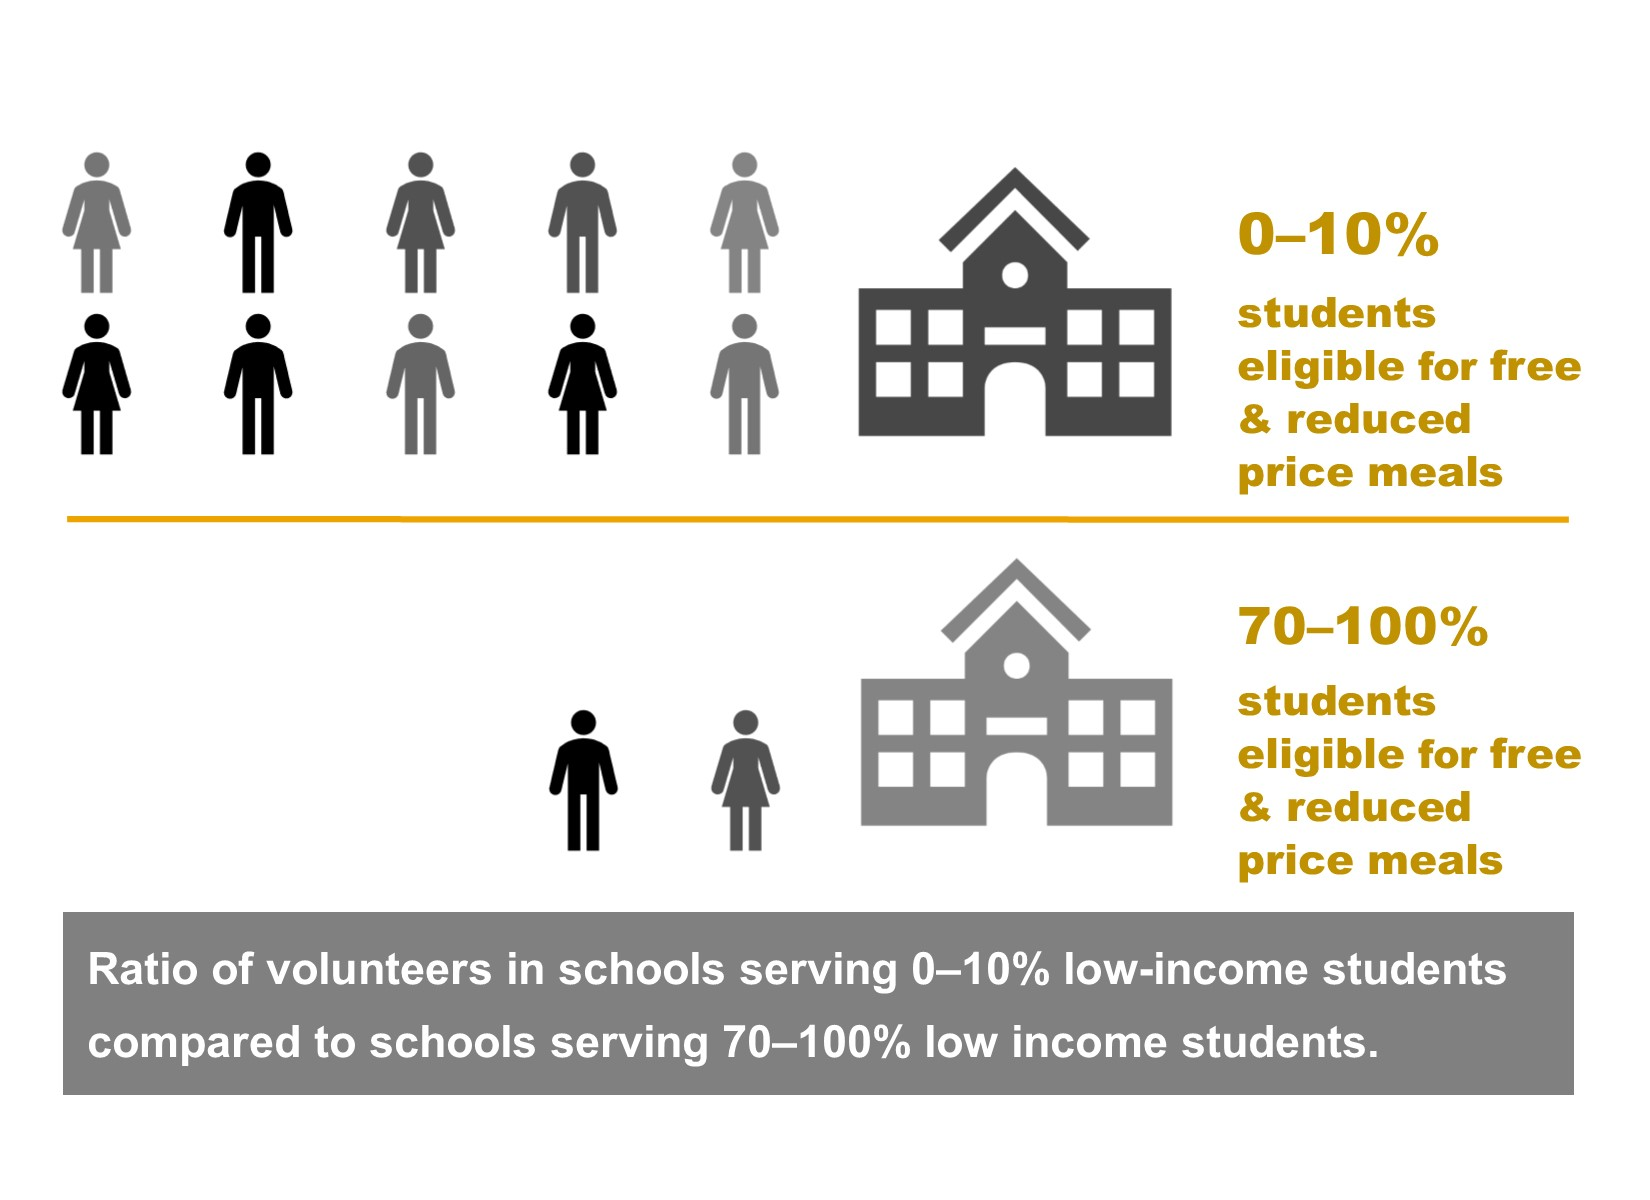 Volunteers in schools - inequities